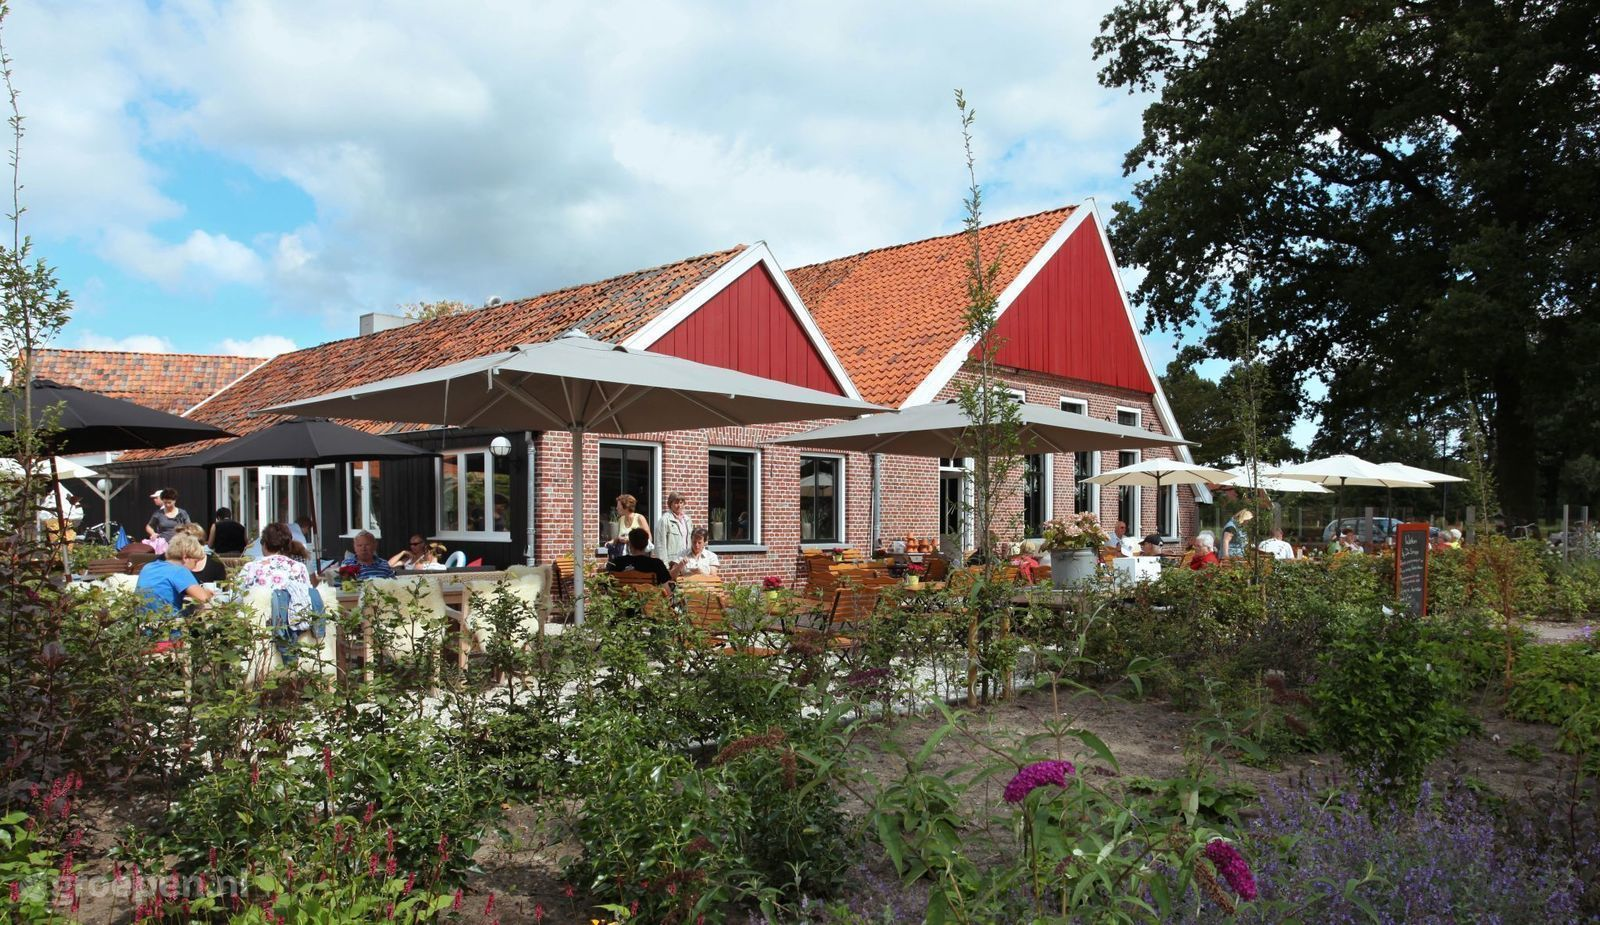 Group accommodation Winterswijk-Miste